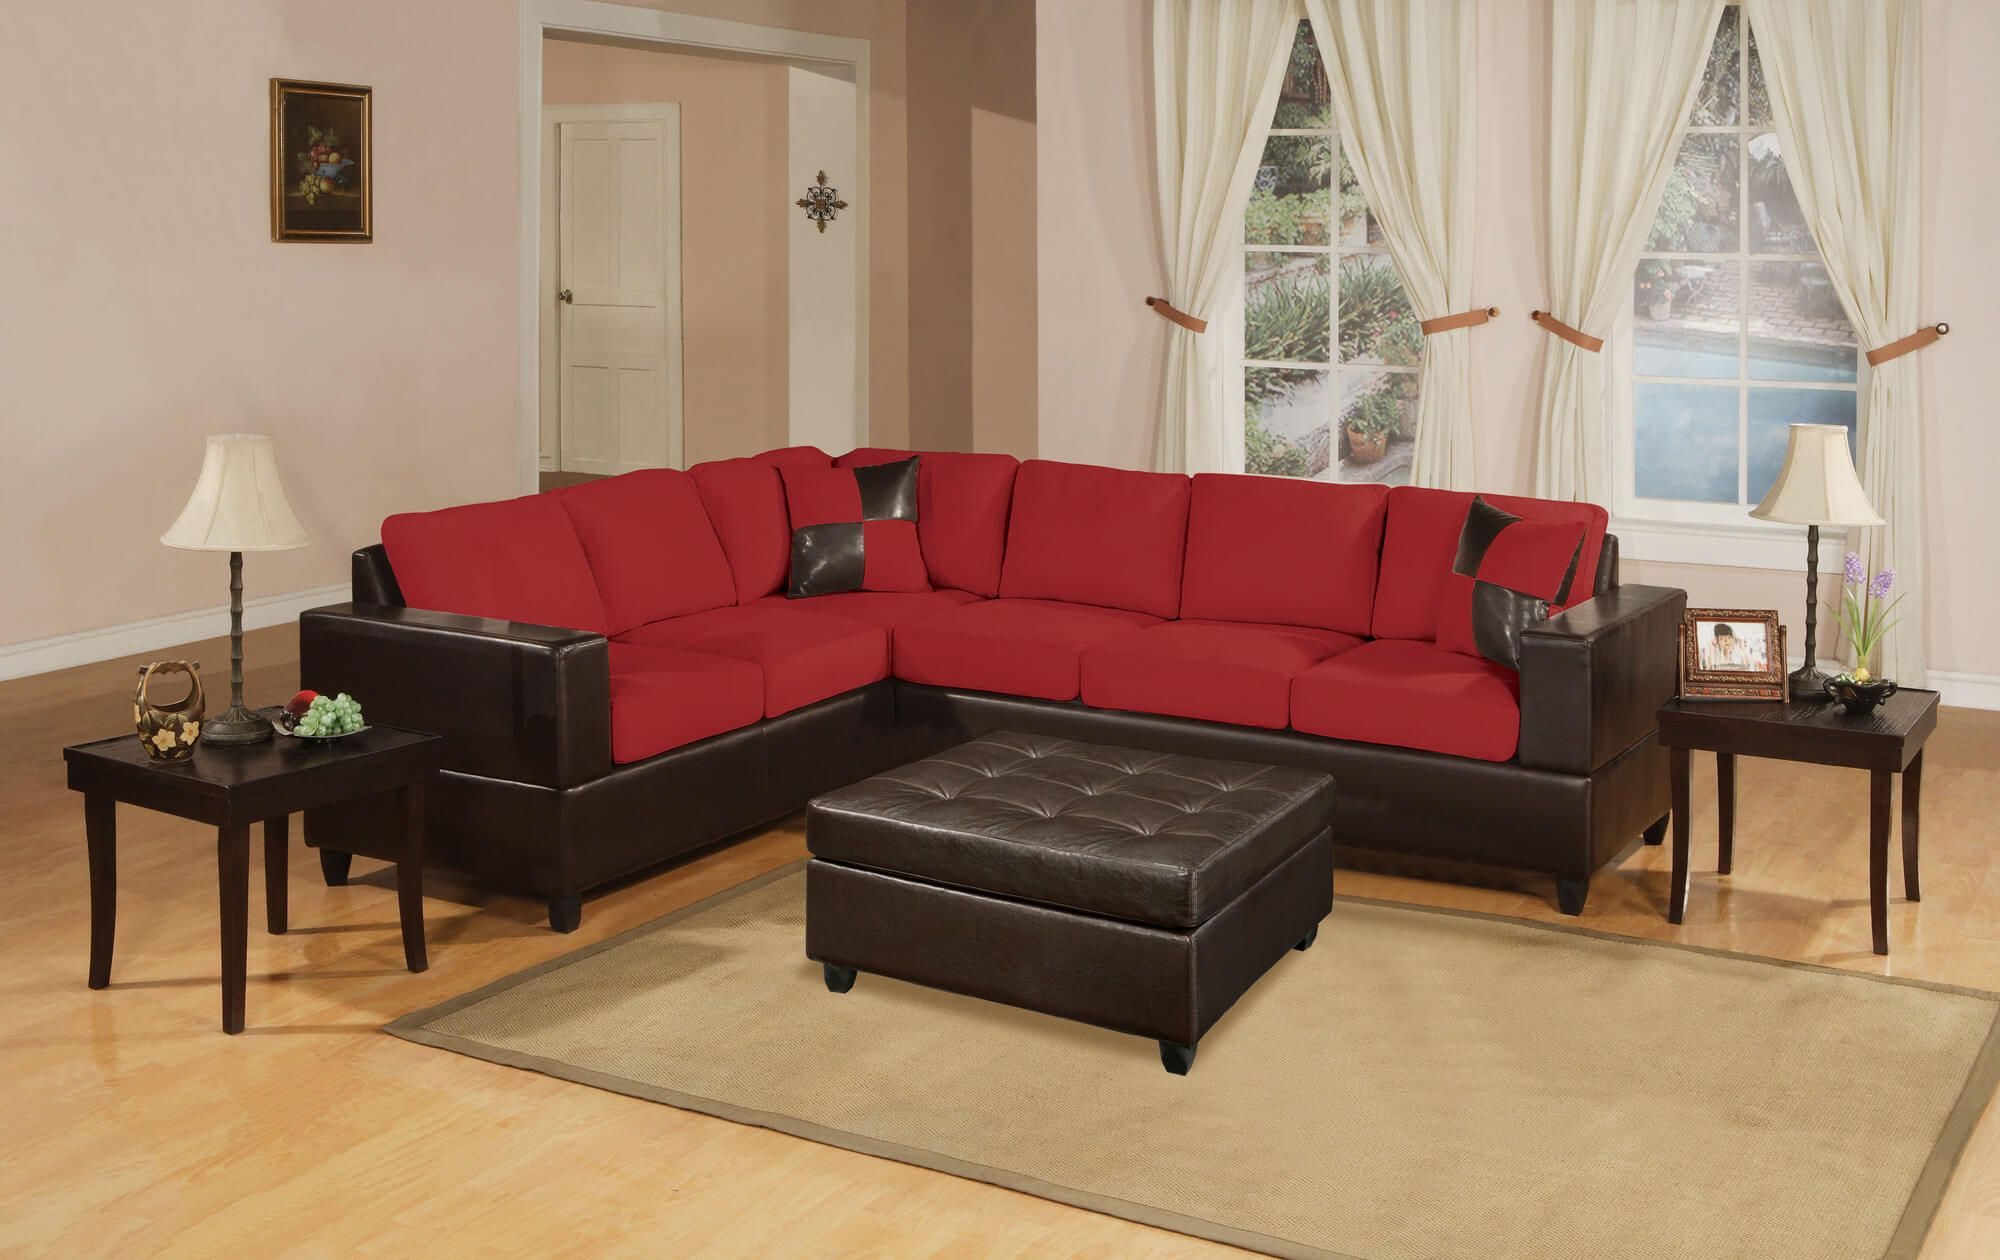 Explore L Shaped Sofa, Leather Fabric, And More! Awesome Lovely Lazy Boy ...